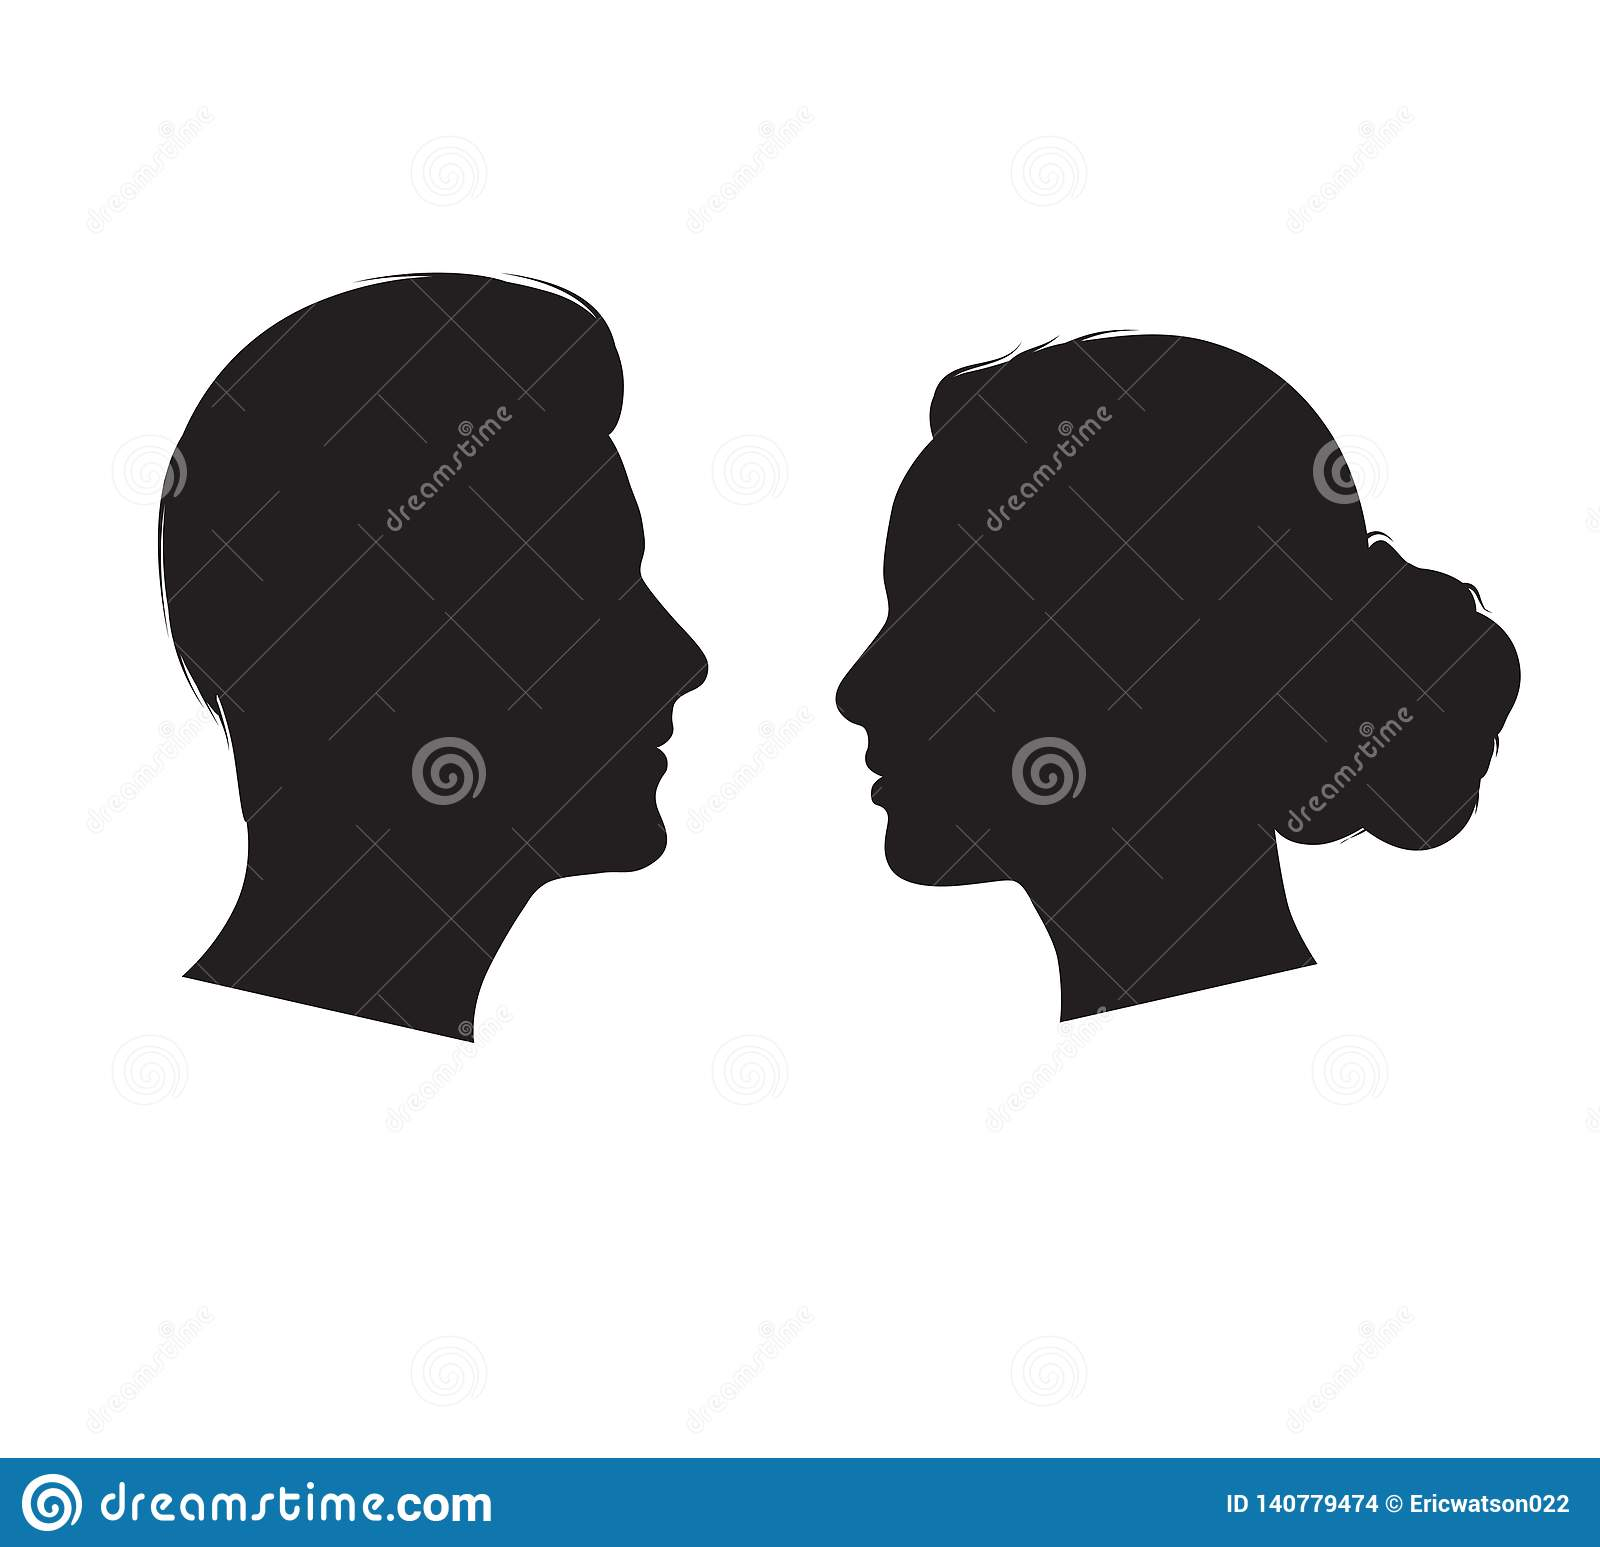 Man And Woman Silhouette Face To Face Vector Stock Vector Illustration Of Edge Element 140779474